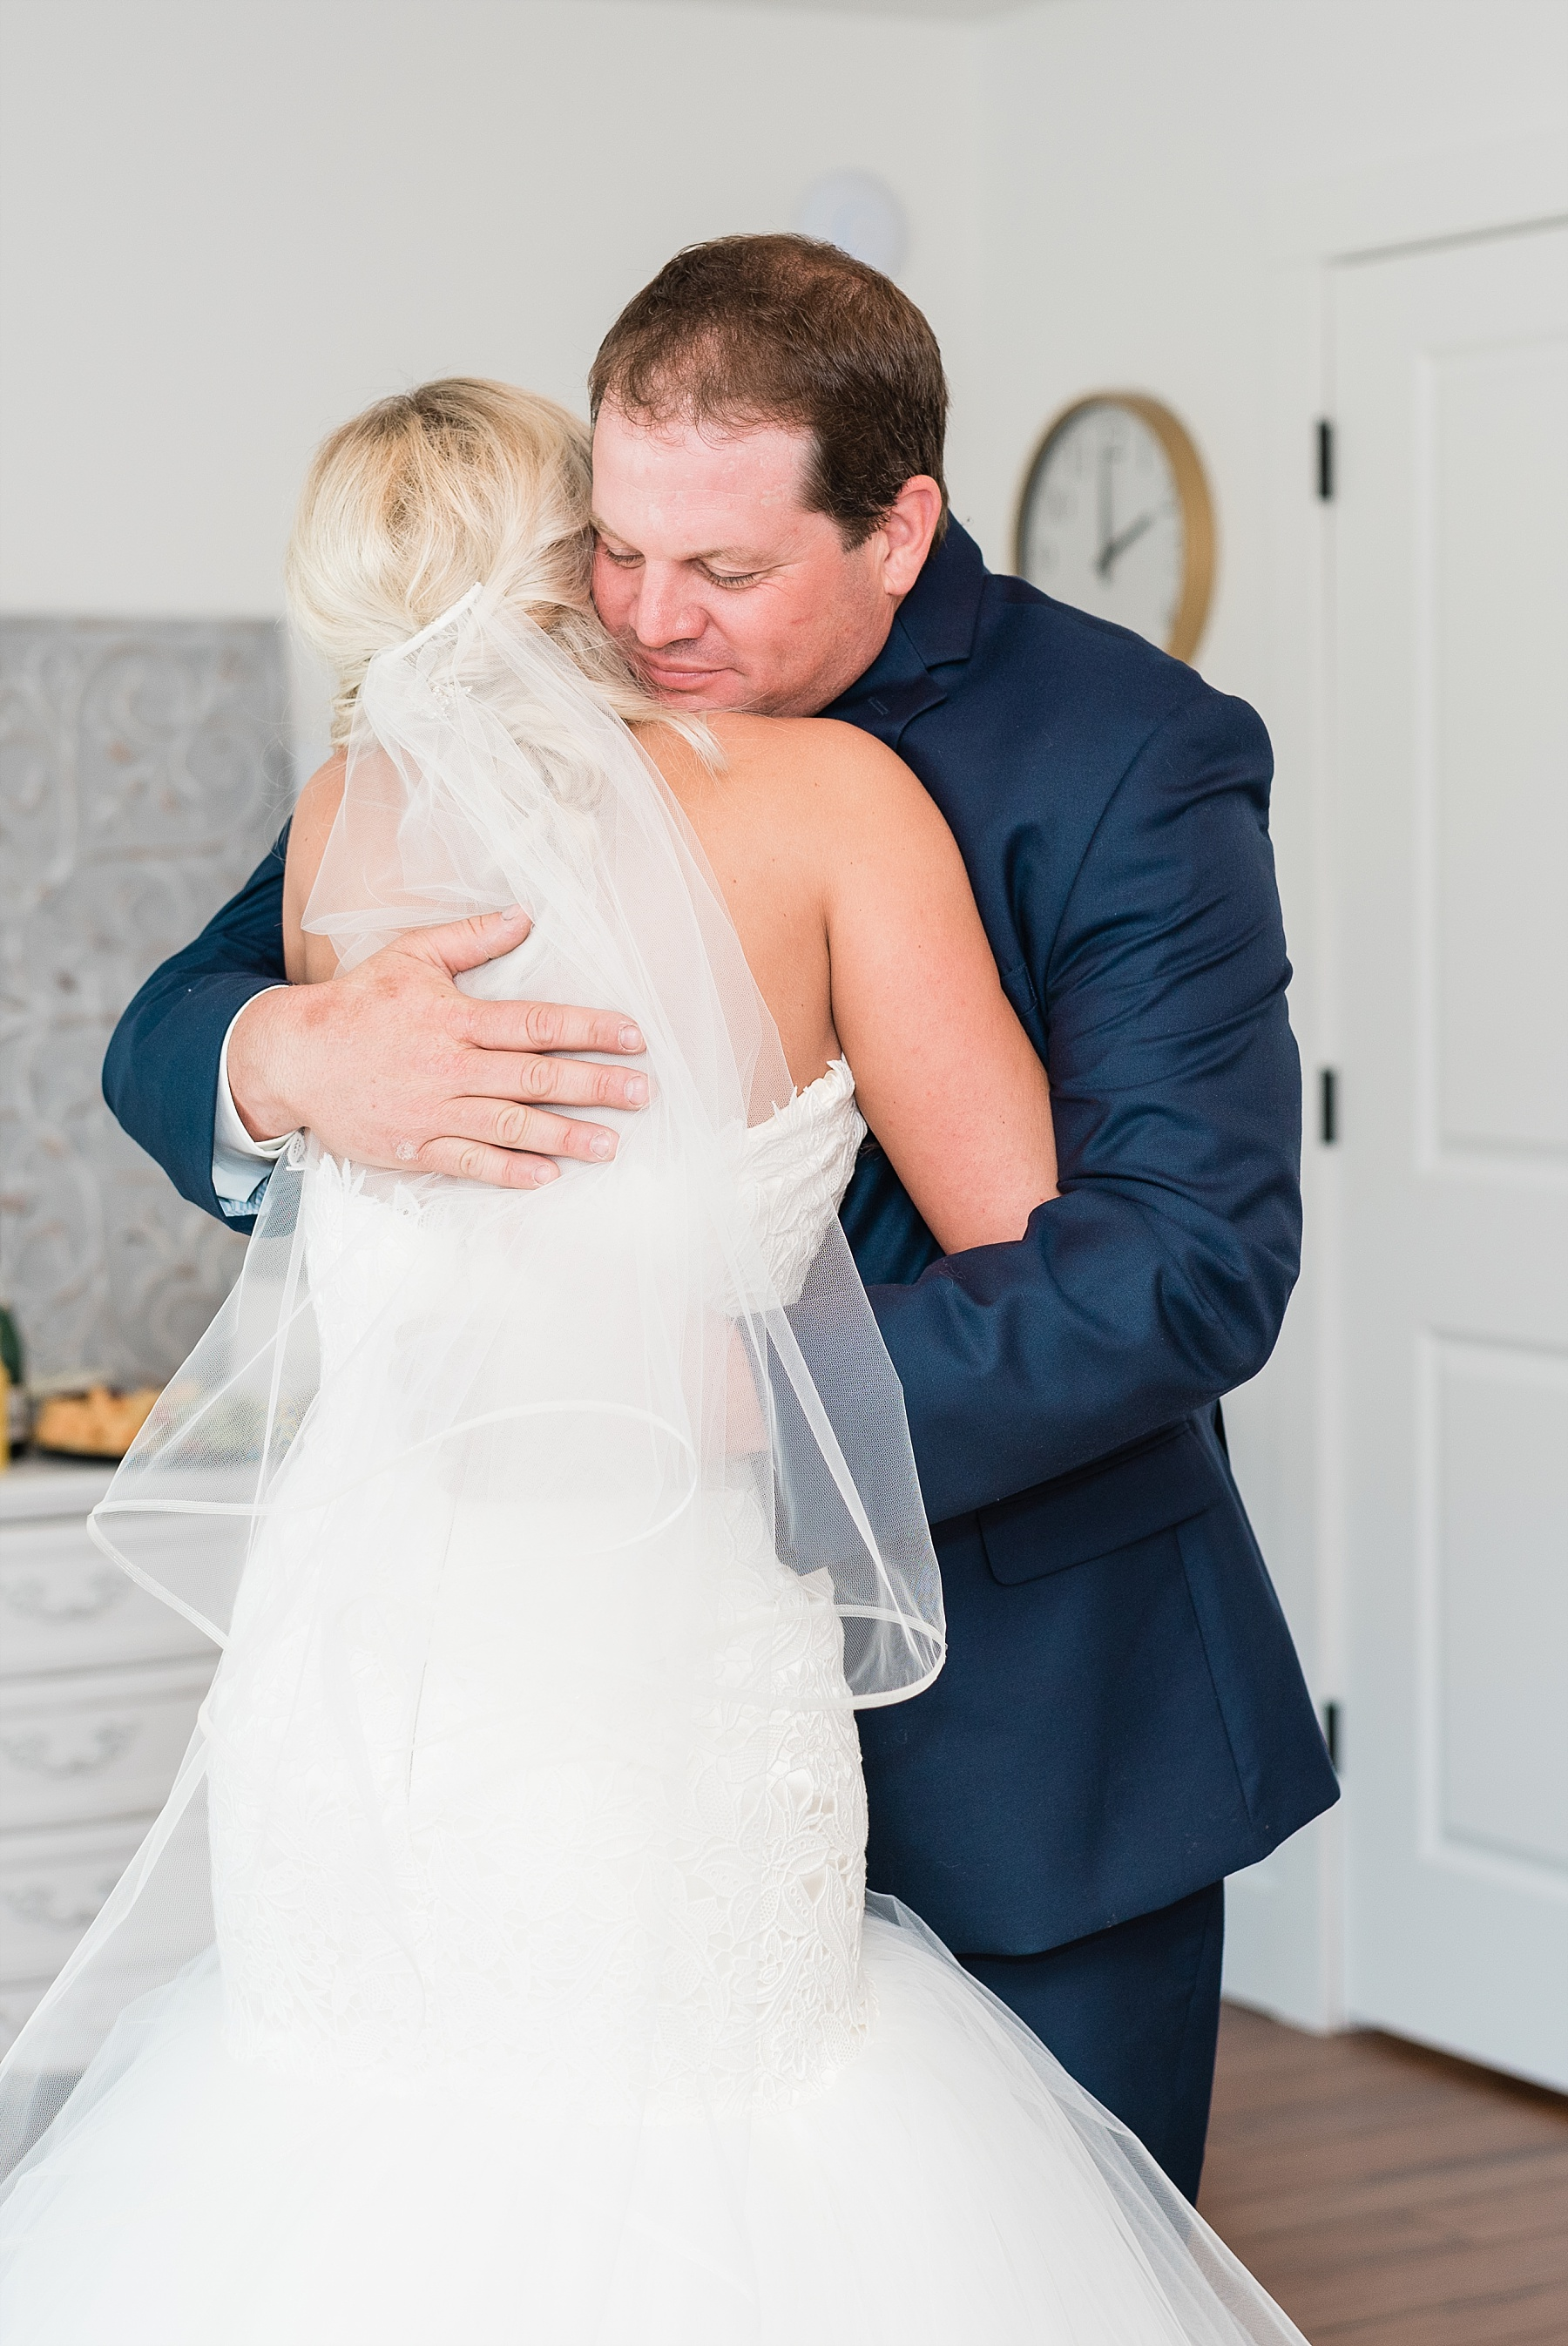 Stunning Heartfelt, Elegant, Fine Art, Chic, Outdoor Spring Wedding with Blush, Cream, Greenery, Rose Gold, and Sequins at Emerson Fields Venue by Kelsi Kliethermes Photography_0014.jpg